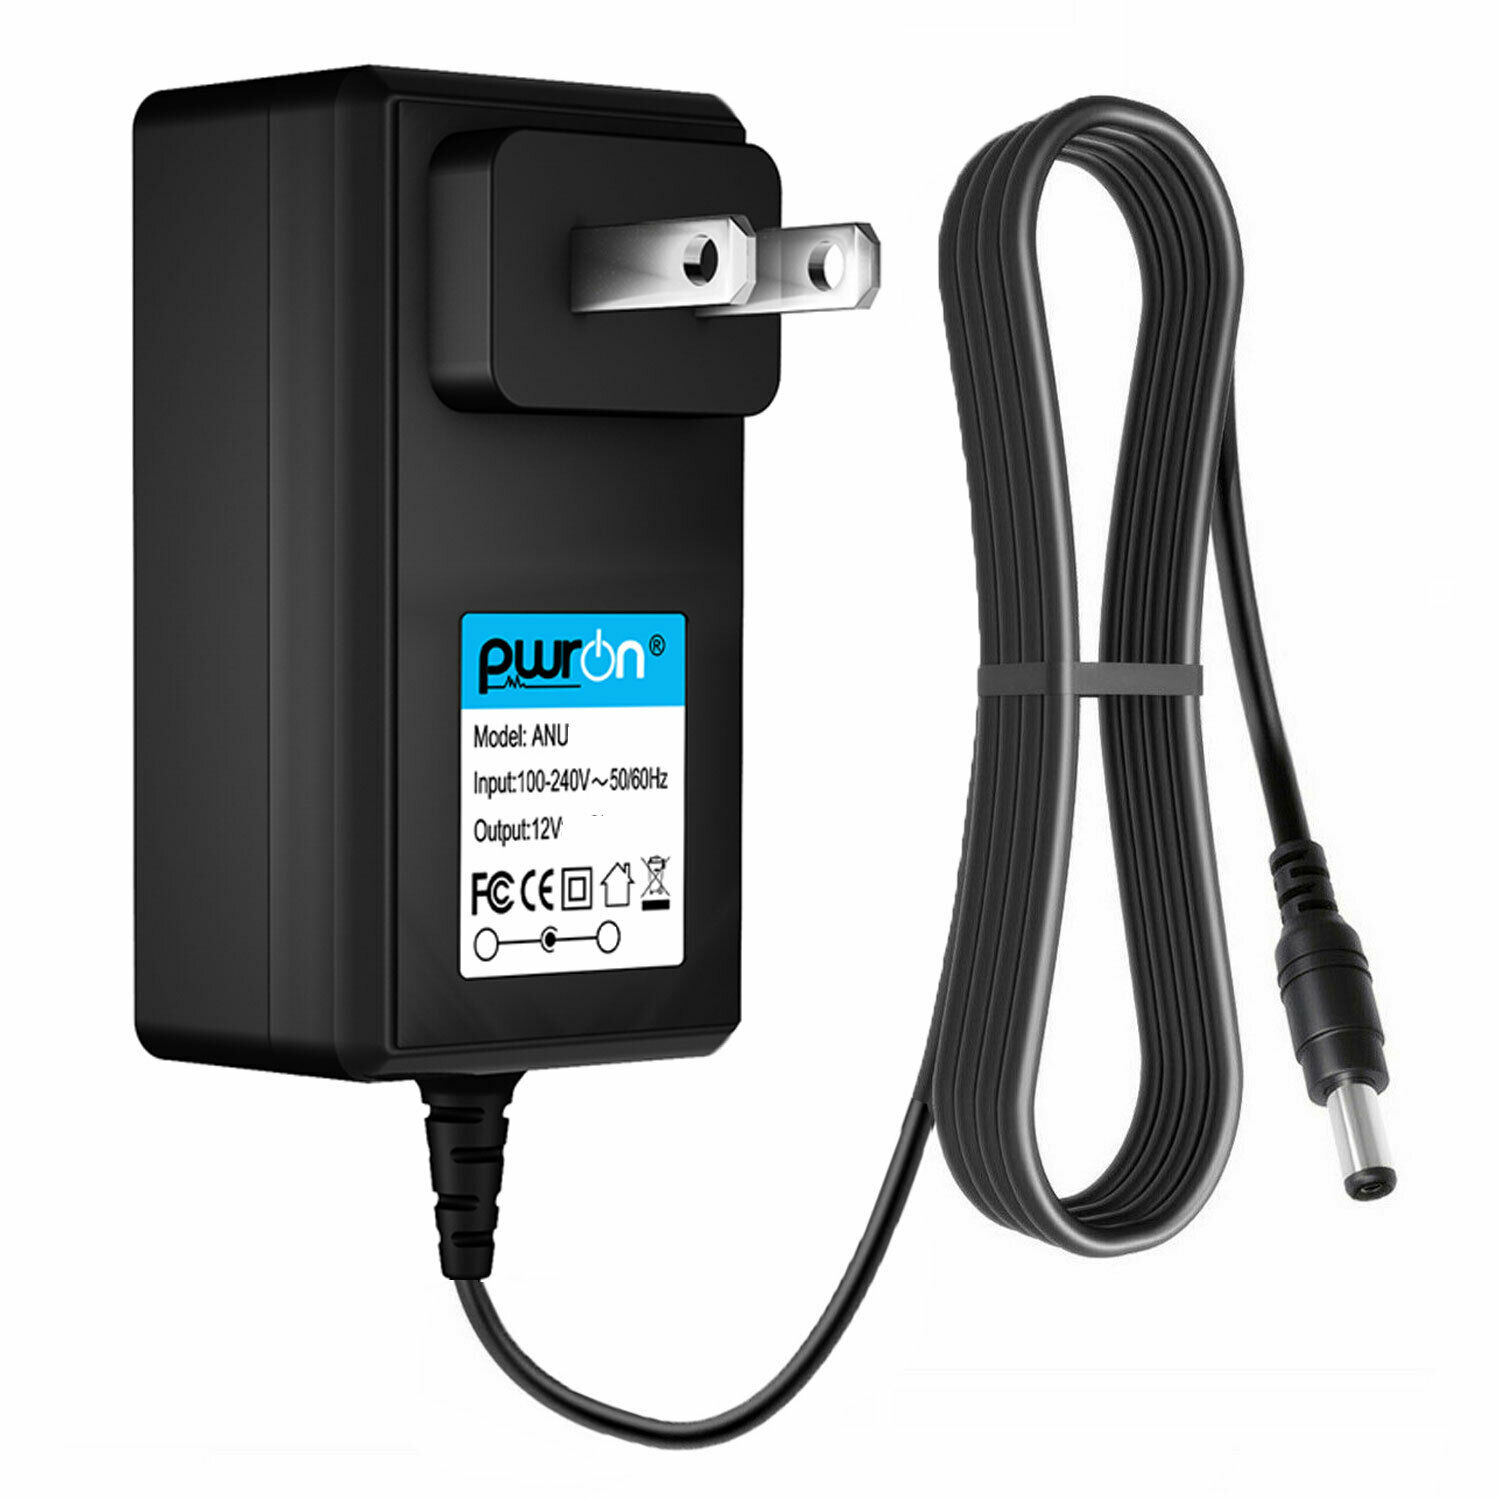 PwrON 12V AC Adapter Charger for Seagate ST303204FPA1E3-RK Power Supply Cord PSU